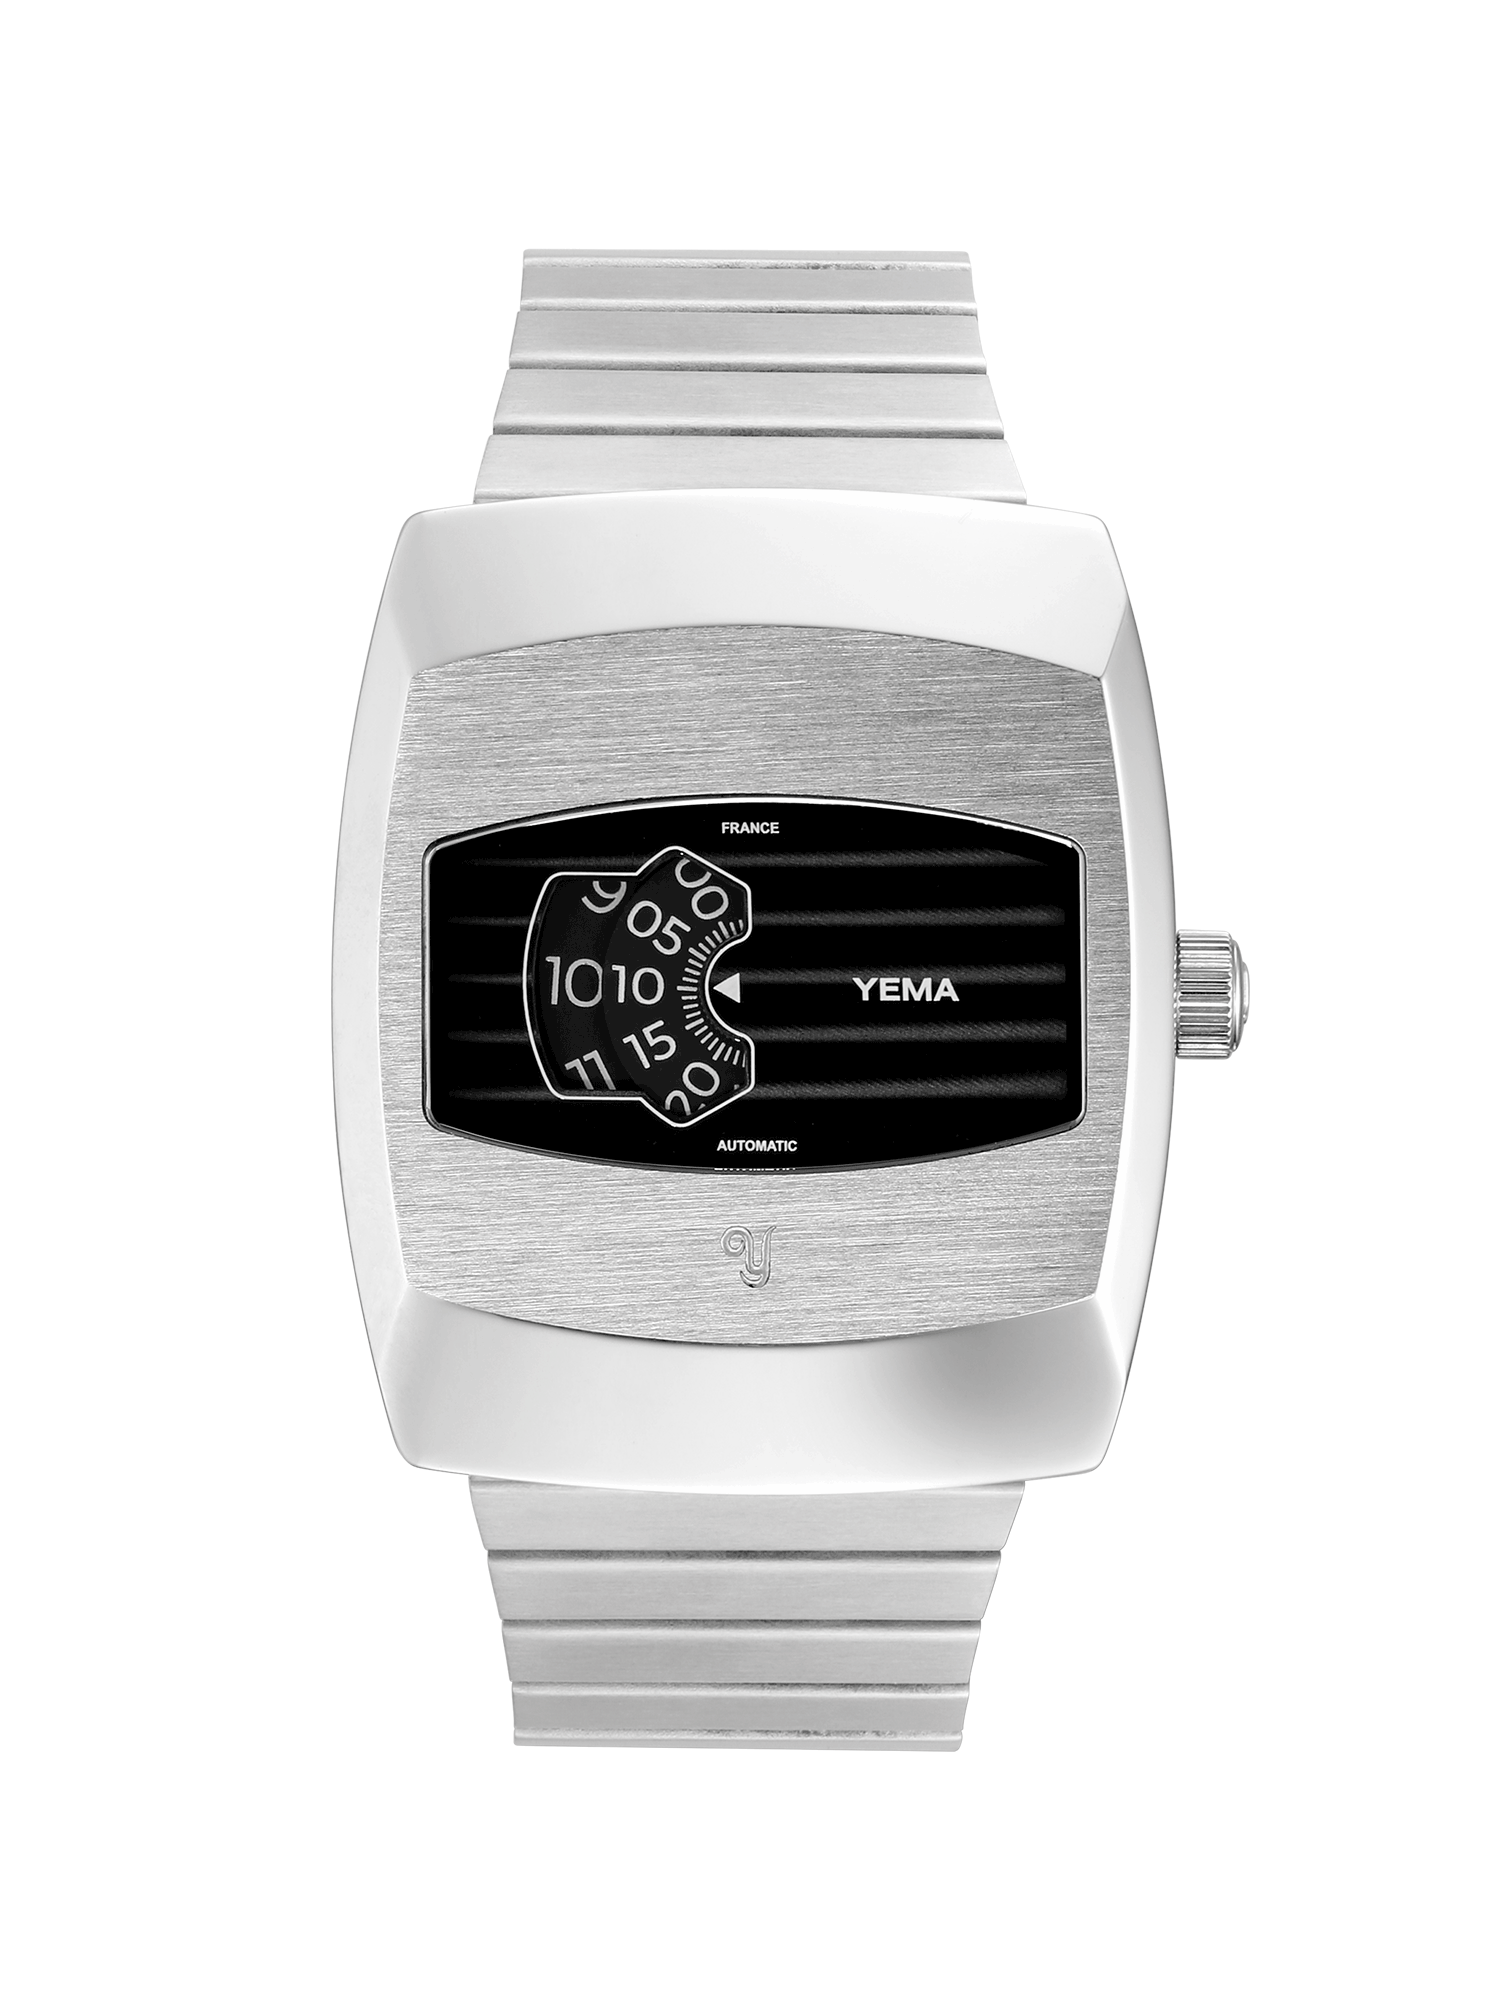 YEMA Digidisc Black Rotatic Disc watch, Black Dial, brushed steel case